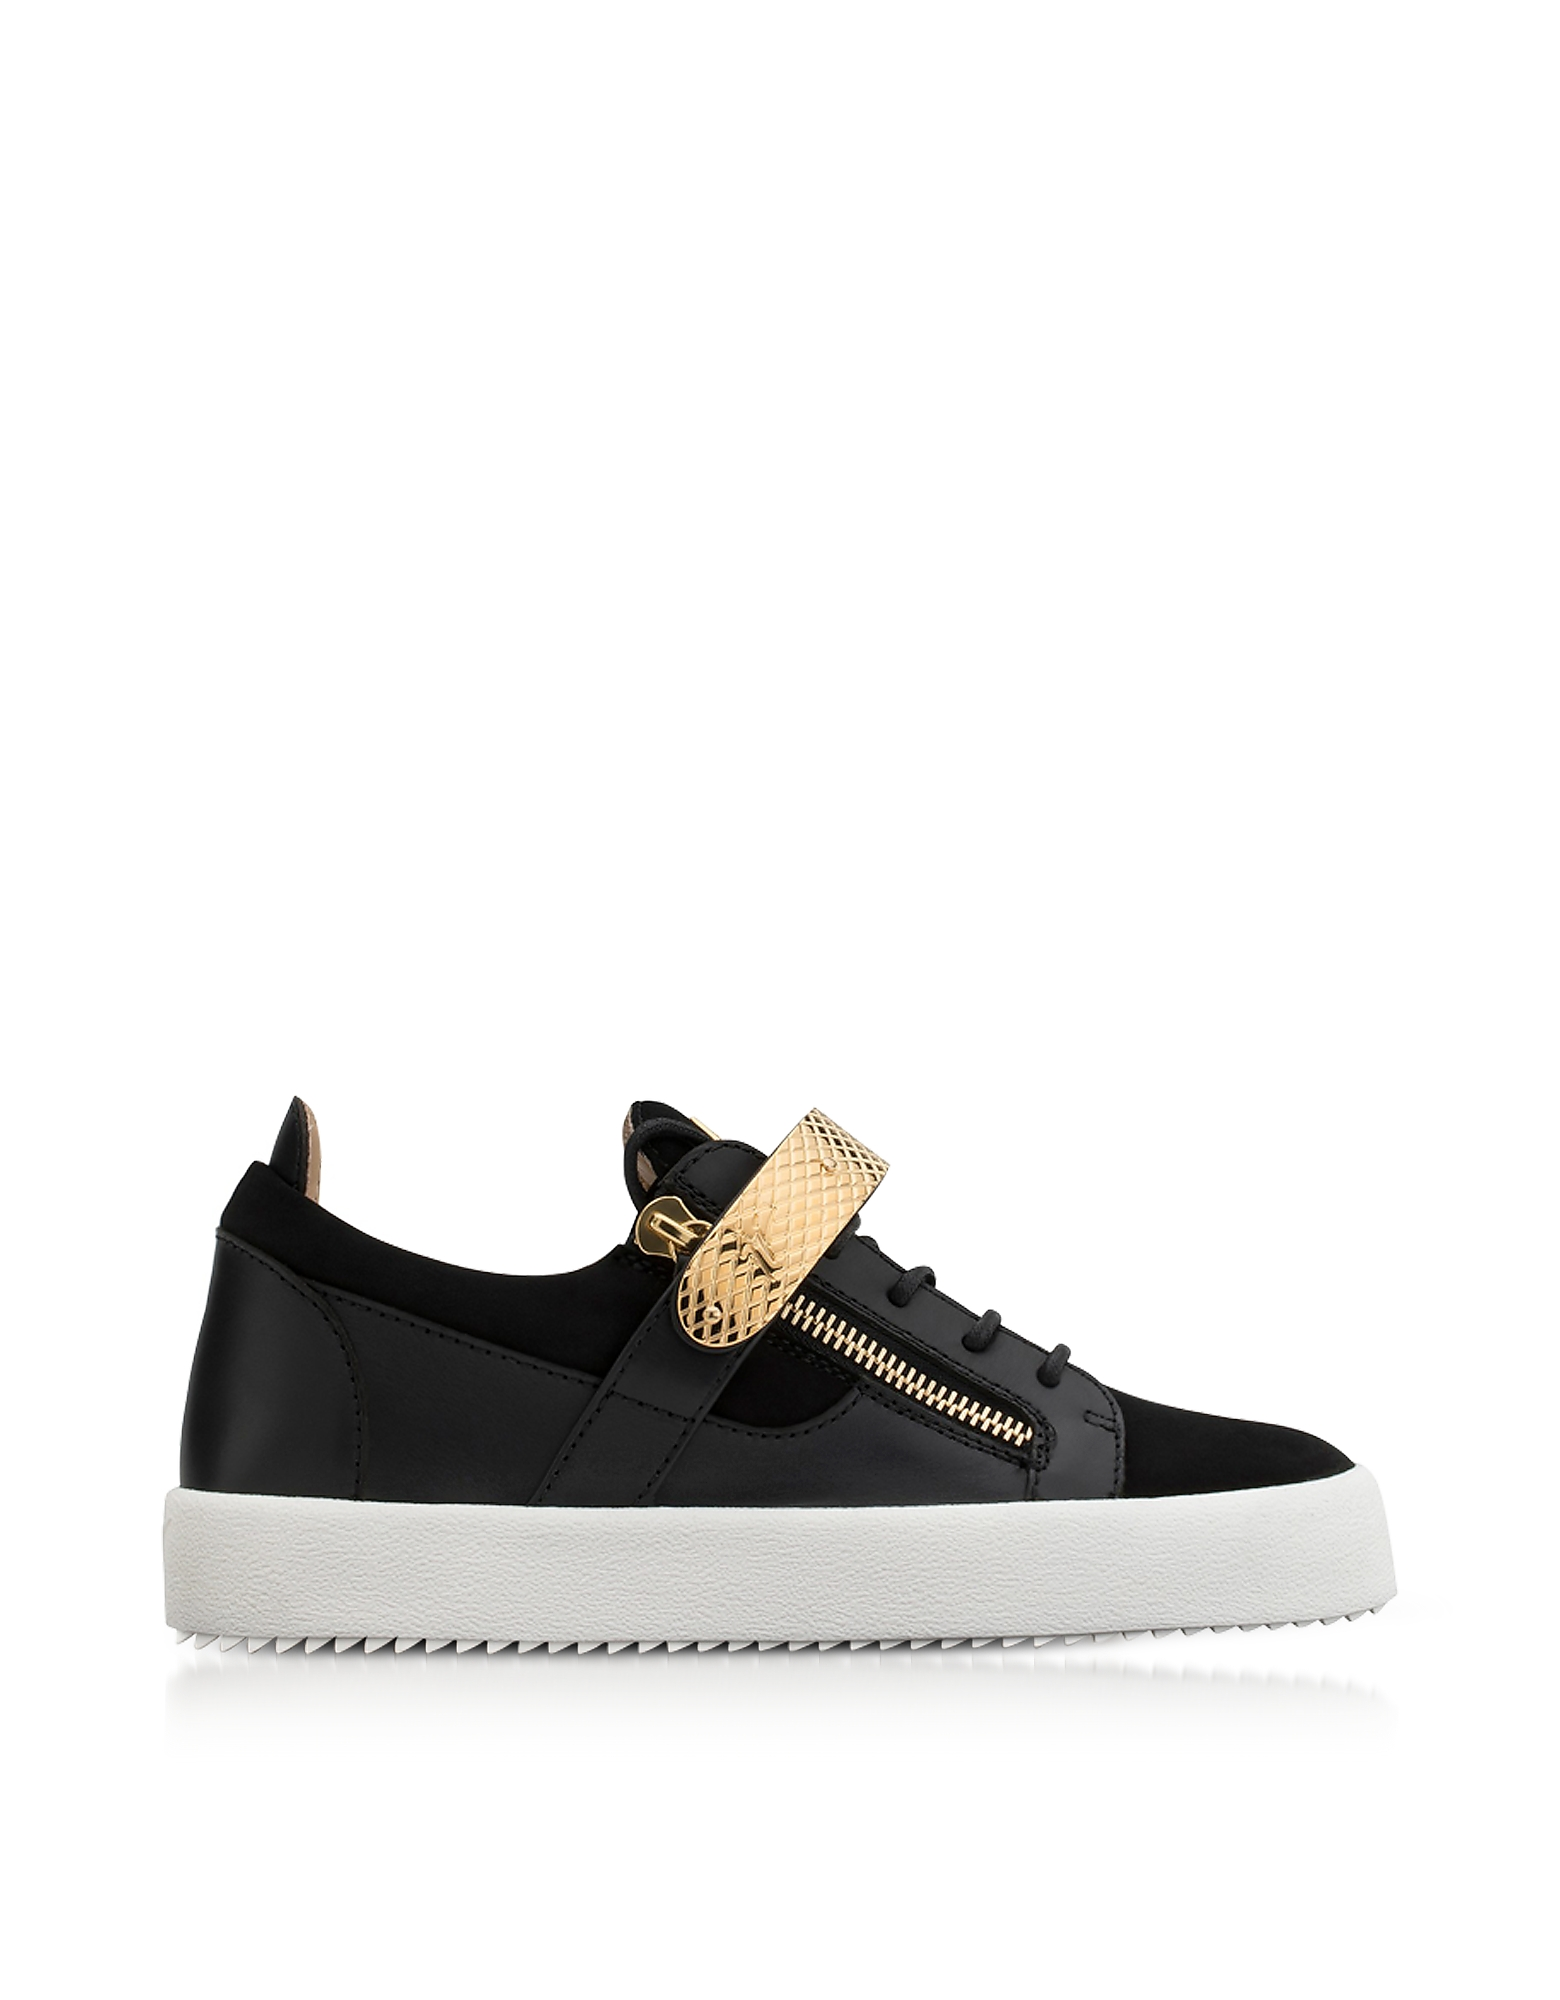 Giuseppe Zanotti Shoes, Black Leather and Suede Archer Men's Sneakers